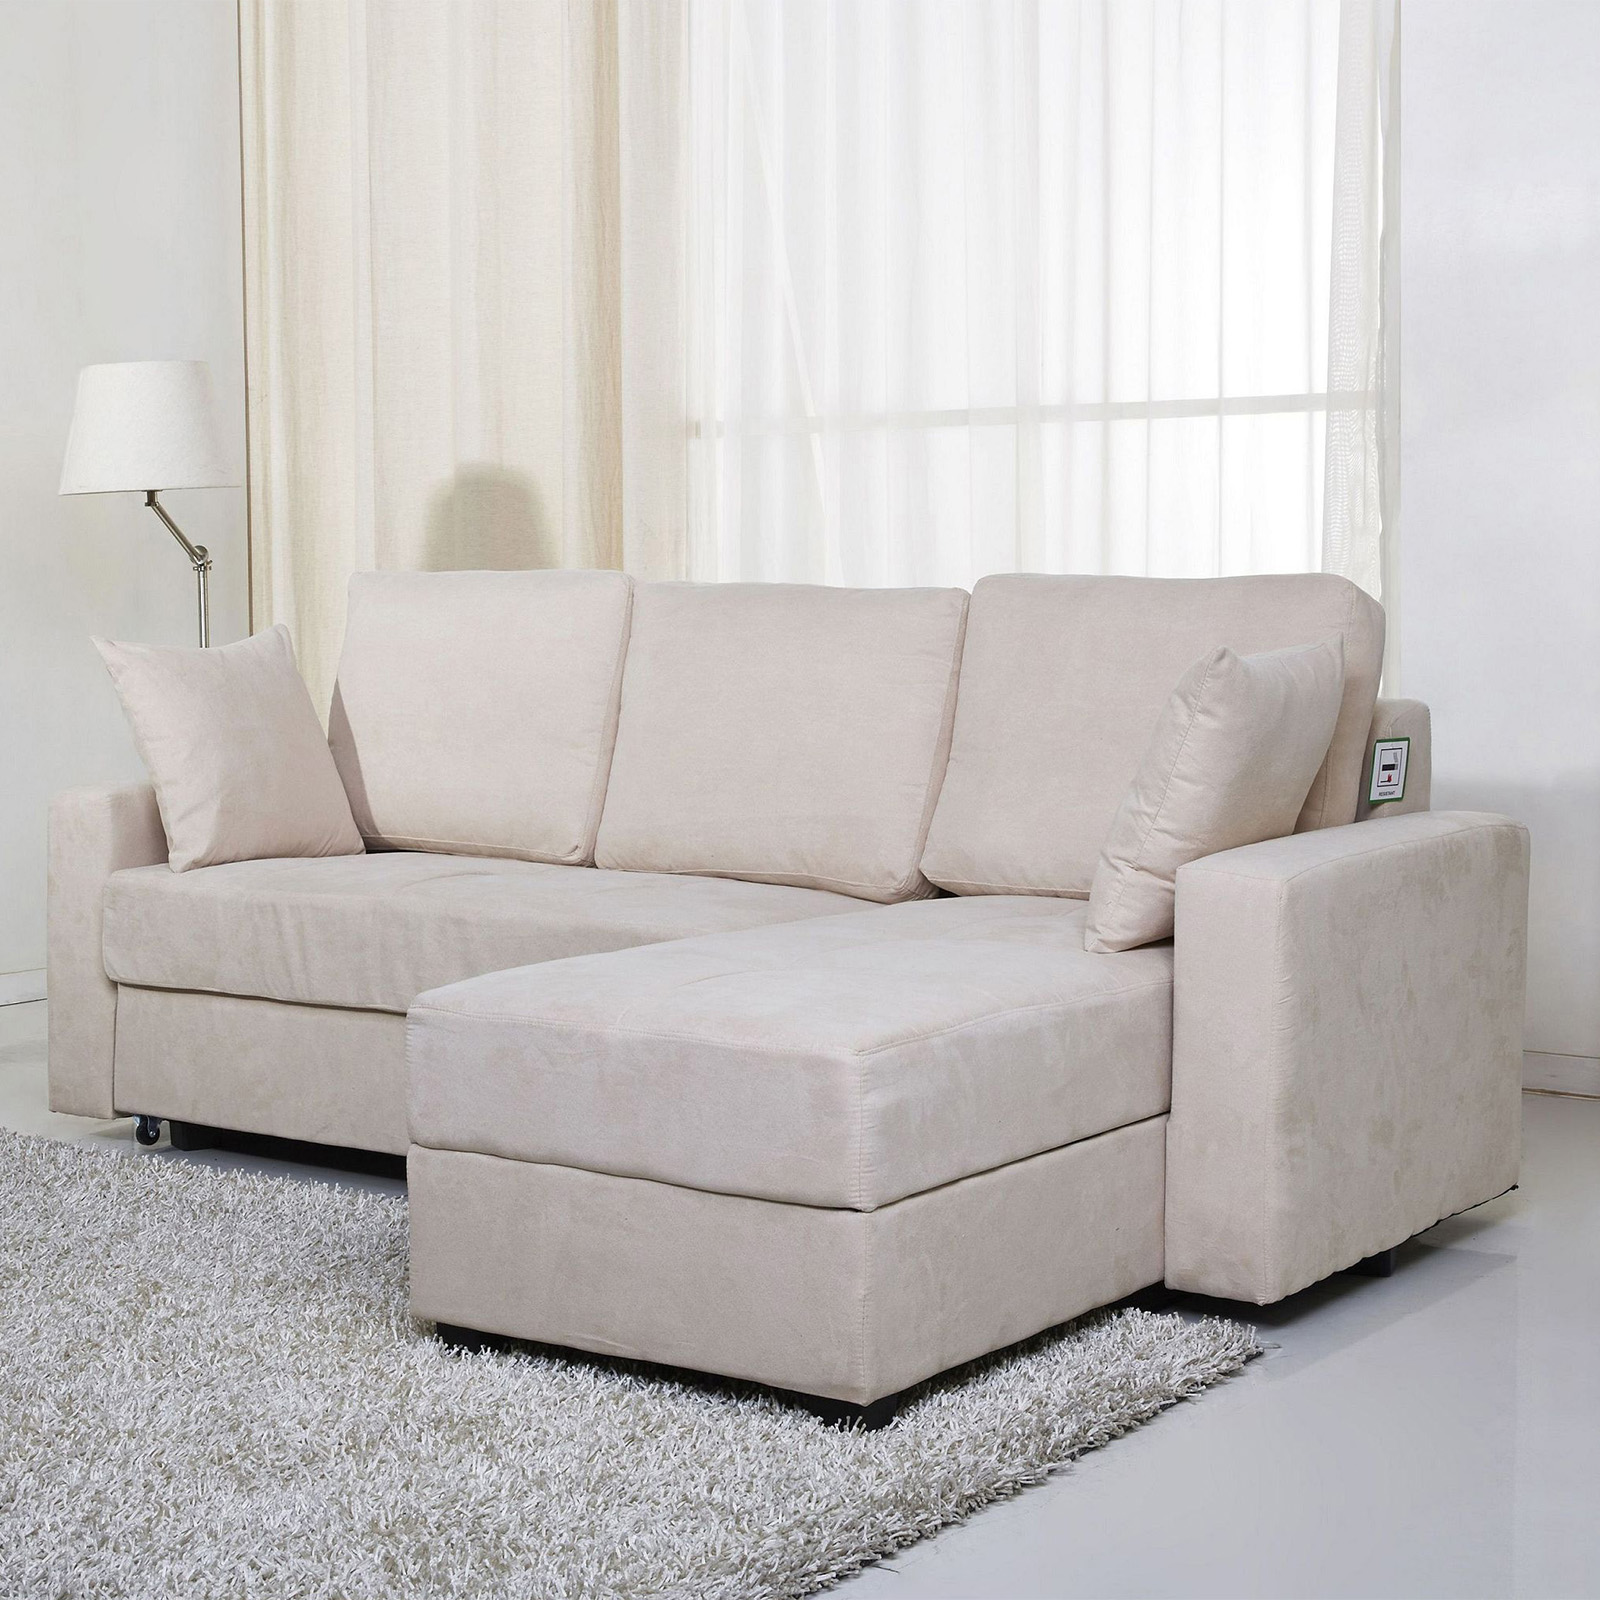 Milton Greens Stars Darwin Sectional Sofa with Storage and Pull